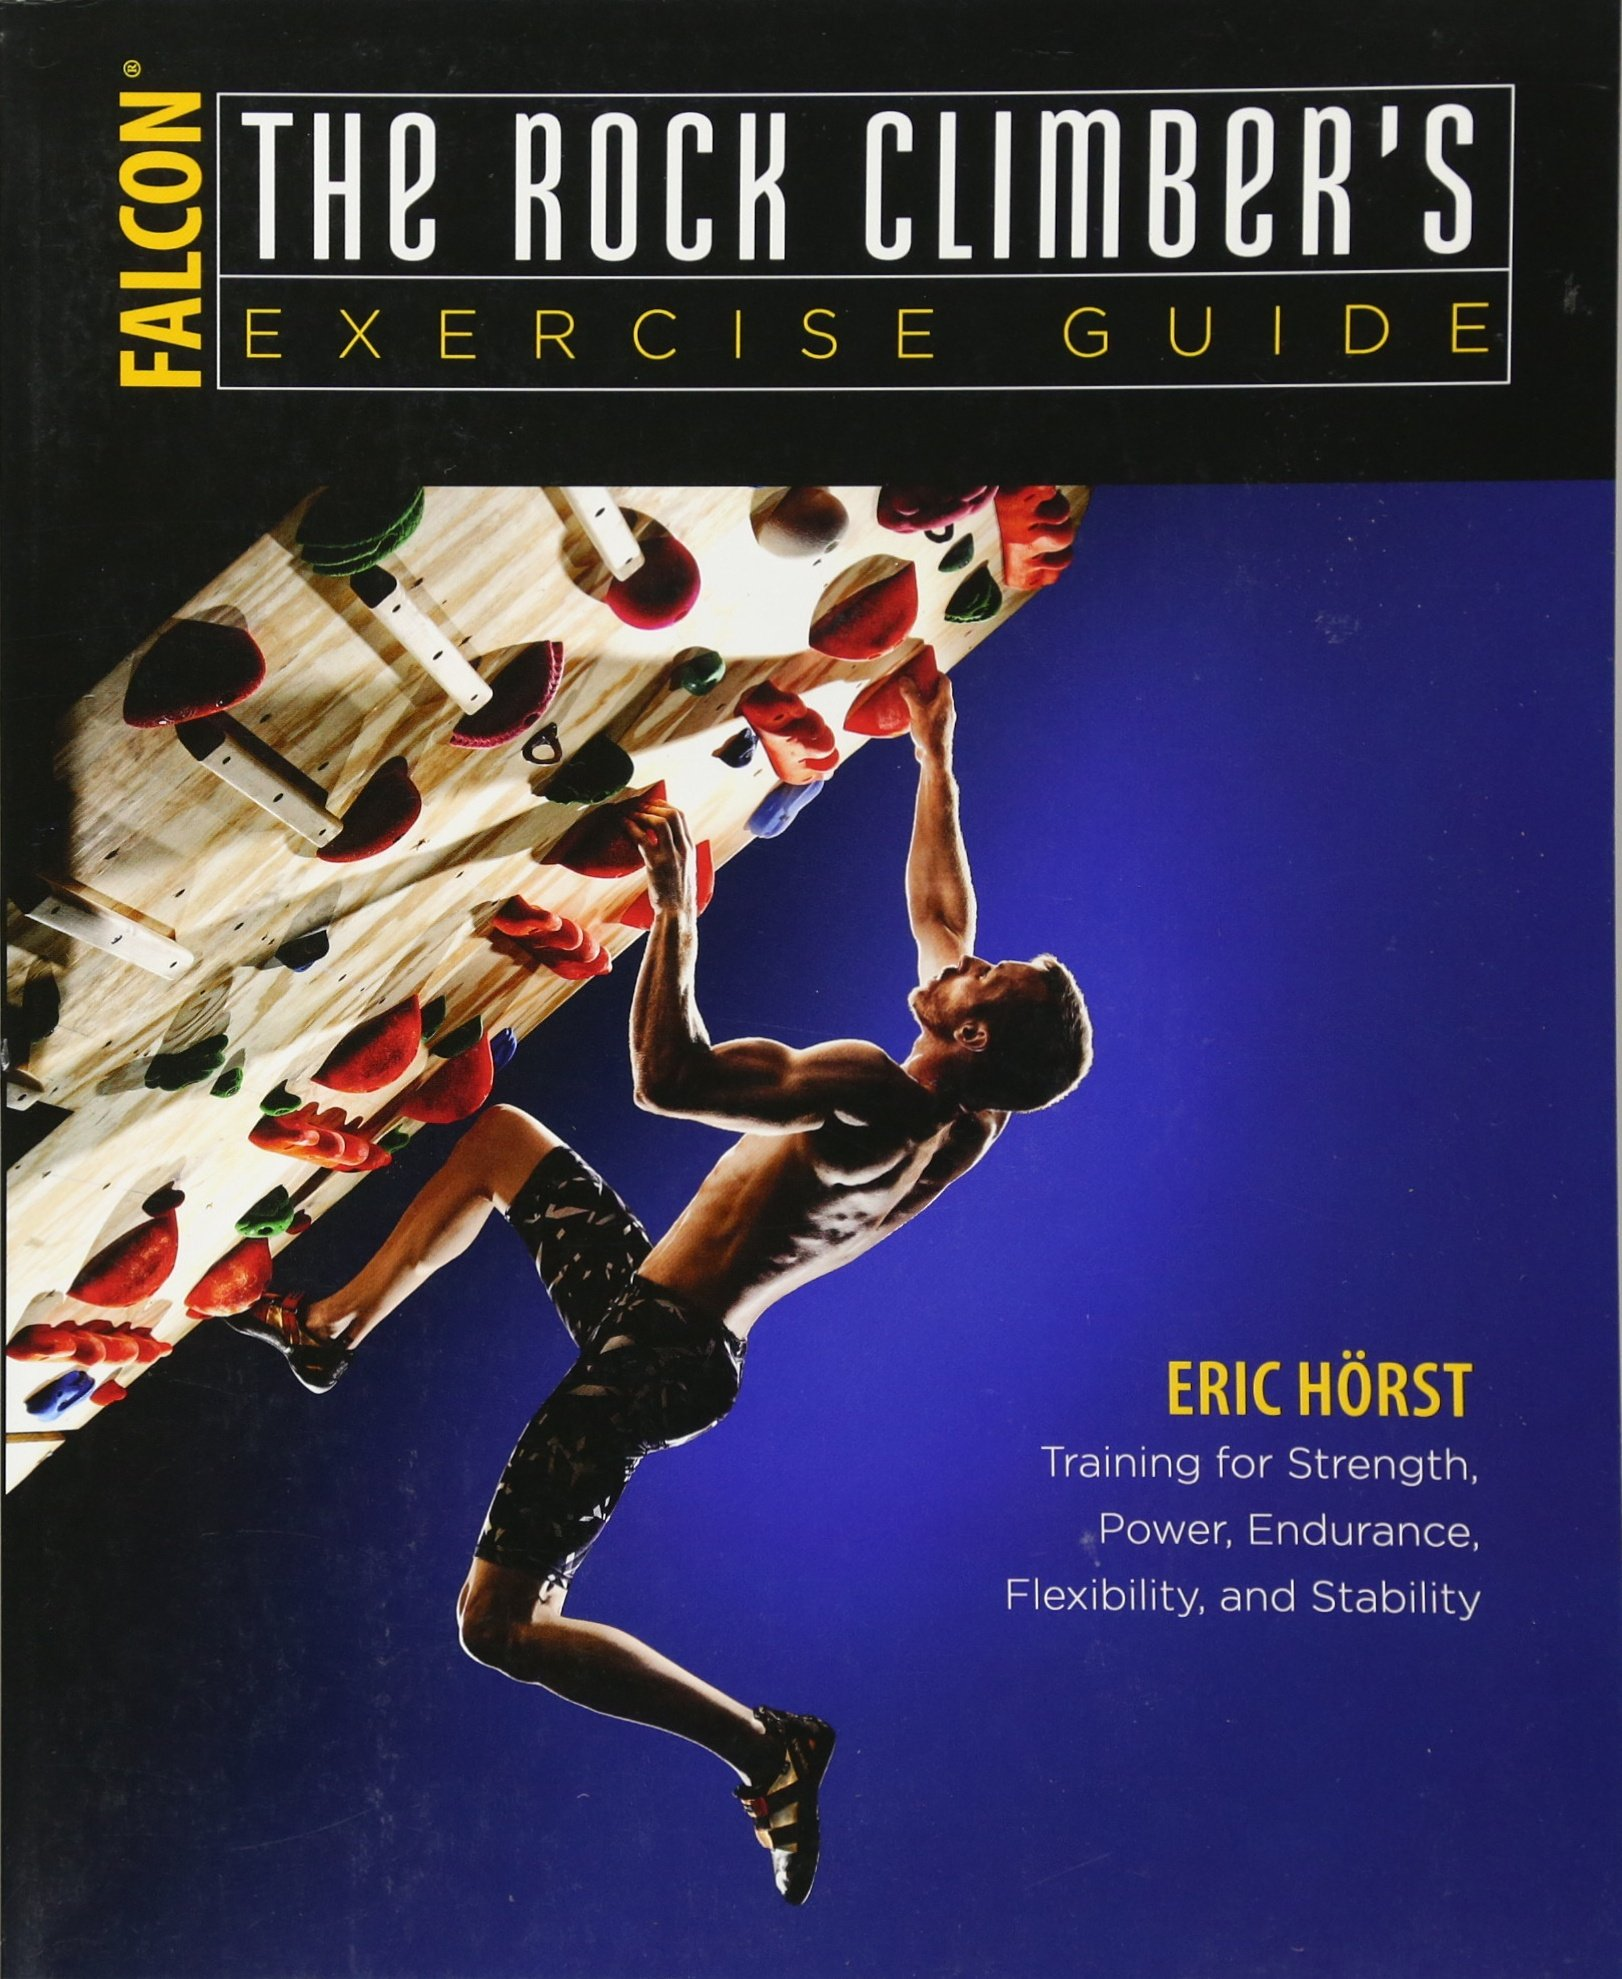 The Rock Climber's Exercise Guide: Training for Strength, Power, Endurance, Flexibility, and Stability (How to Climb)